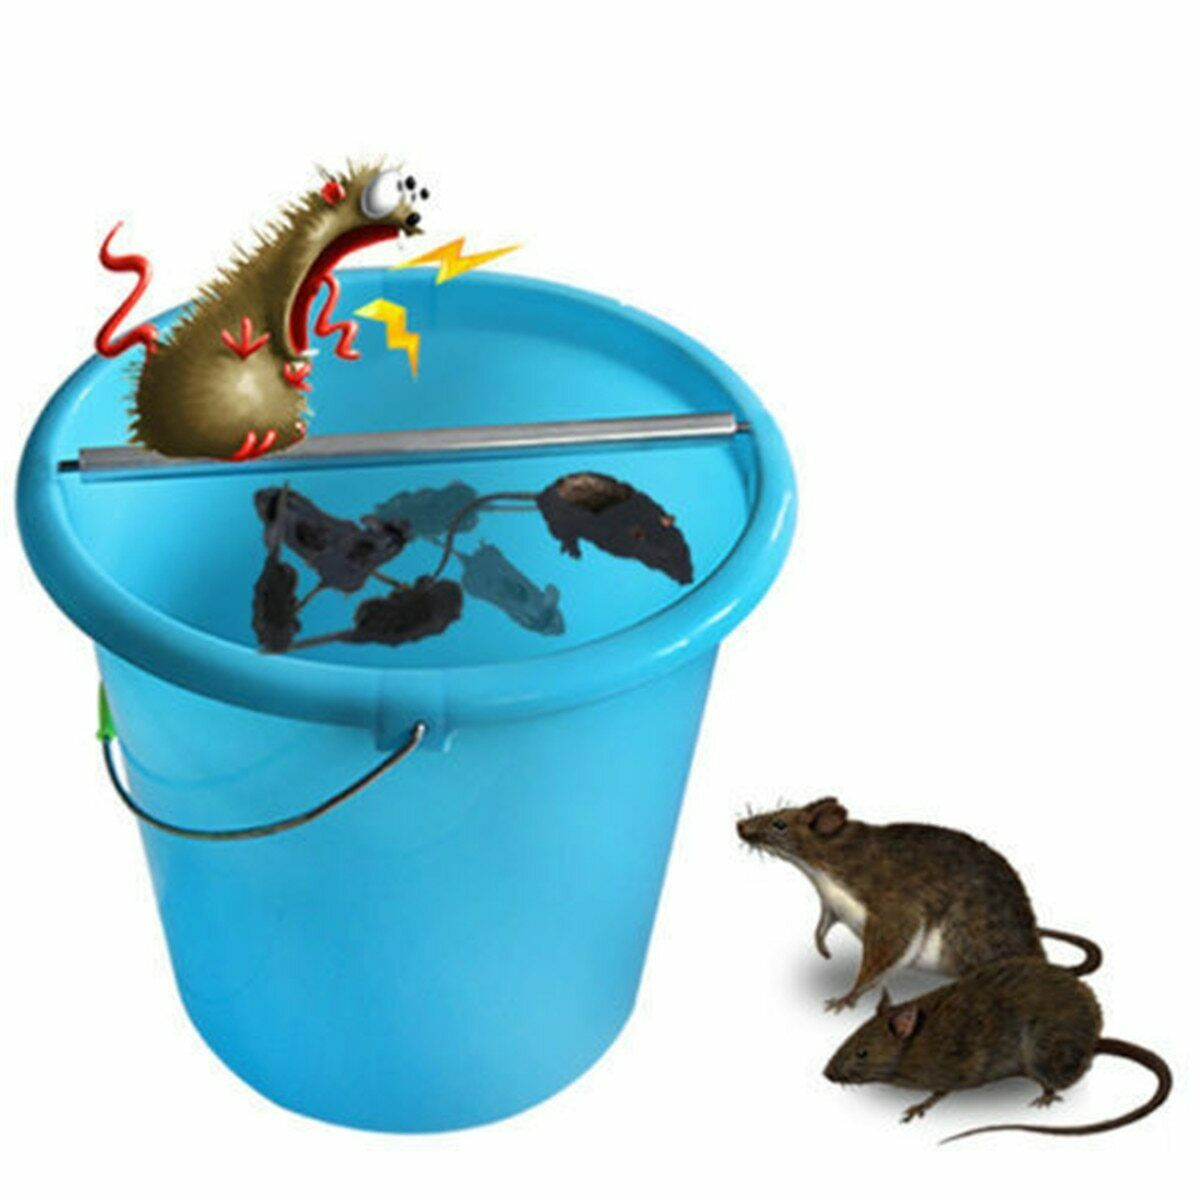 Log Roll Bucket Mouse Trap Rodent Stainless Steel Carbon